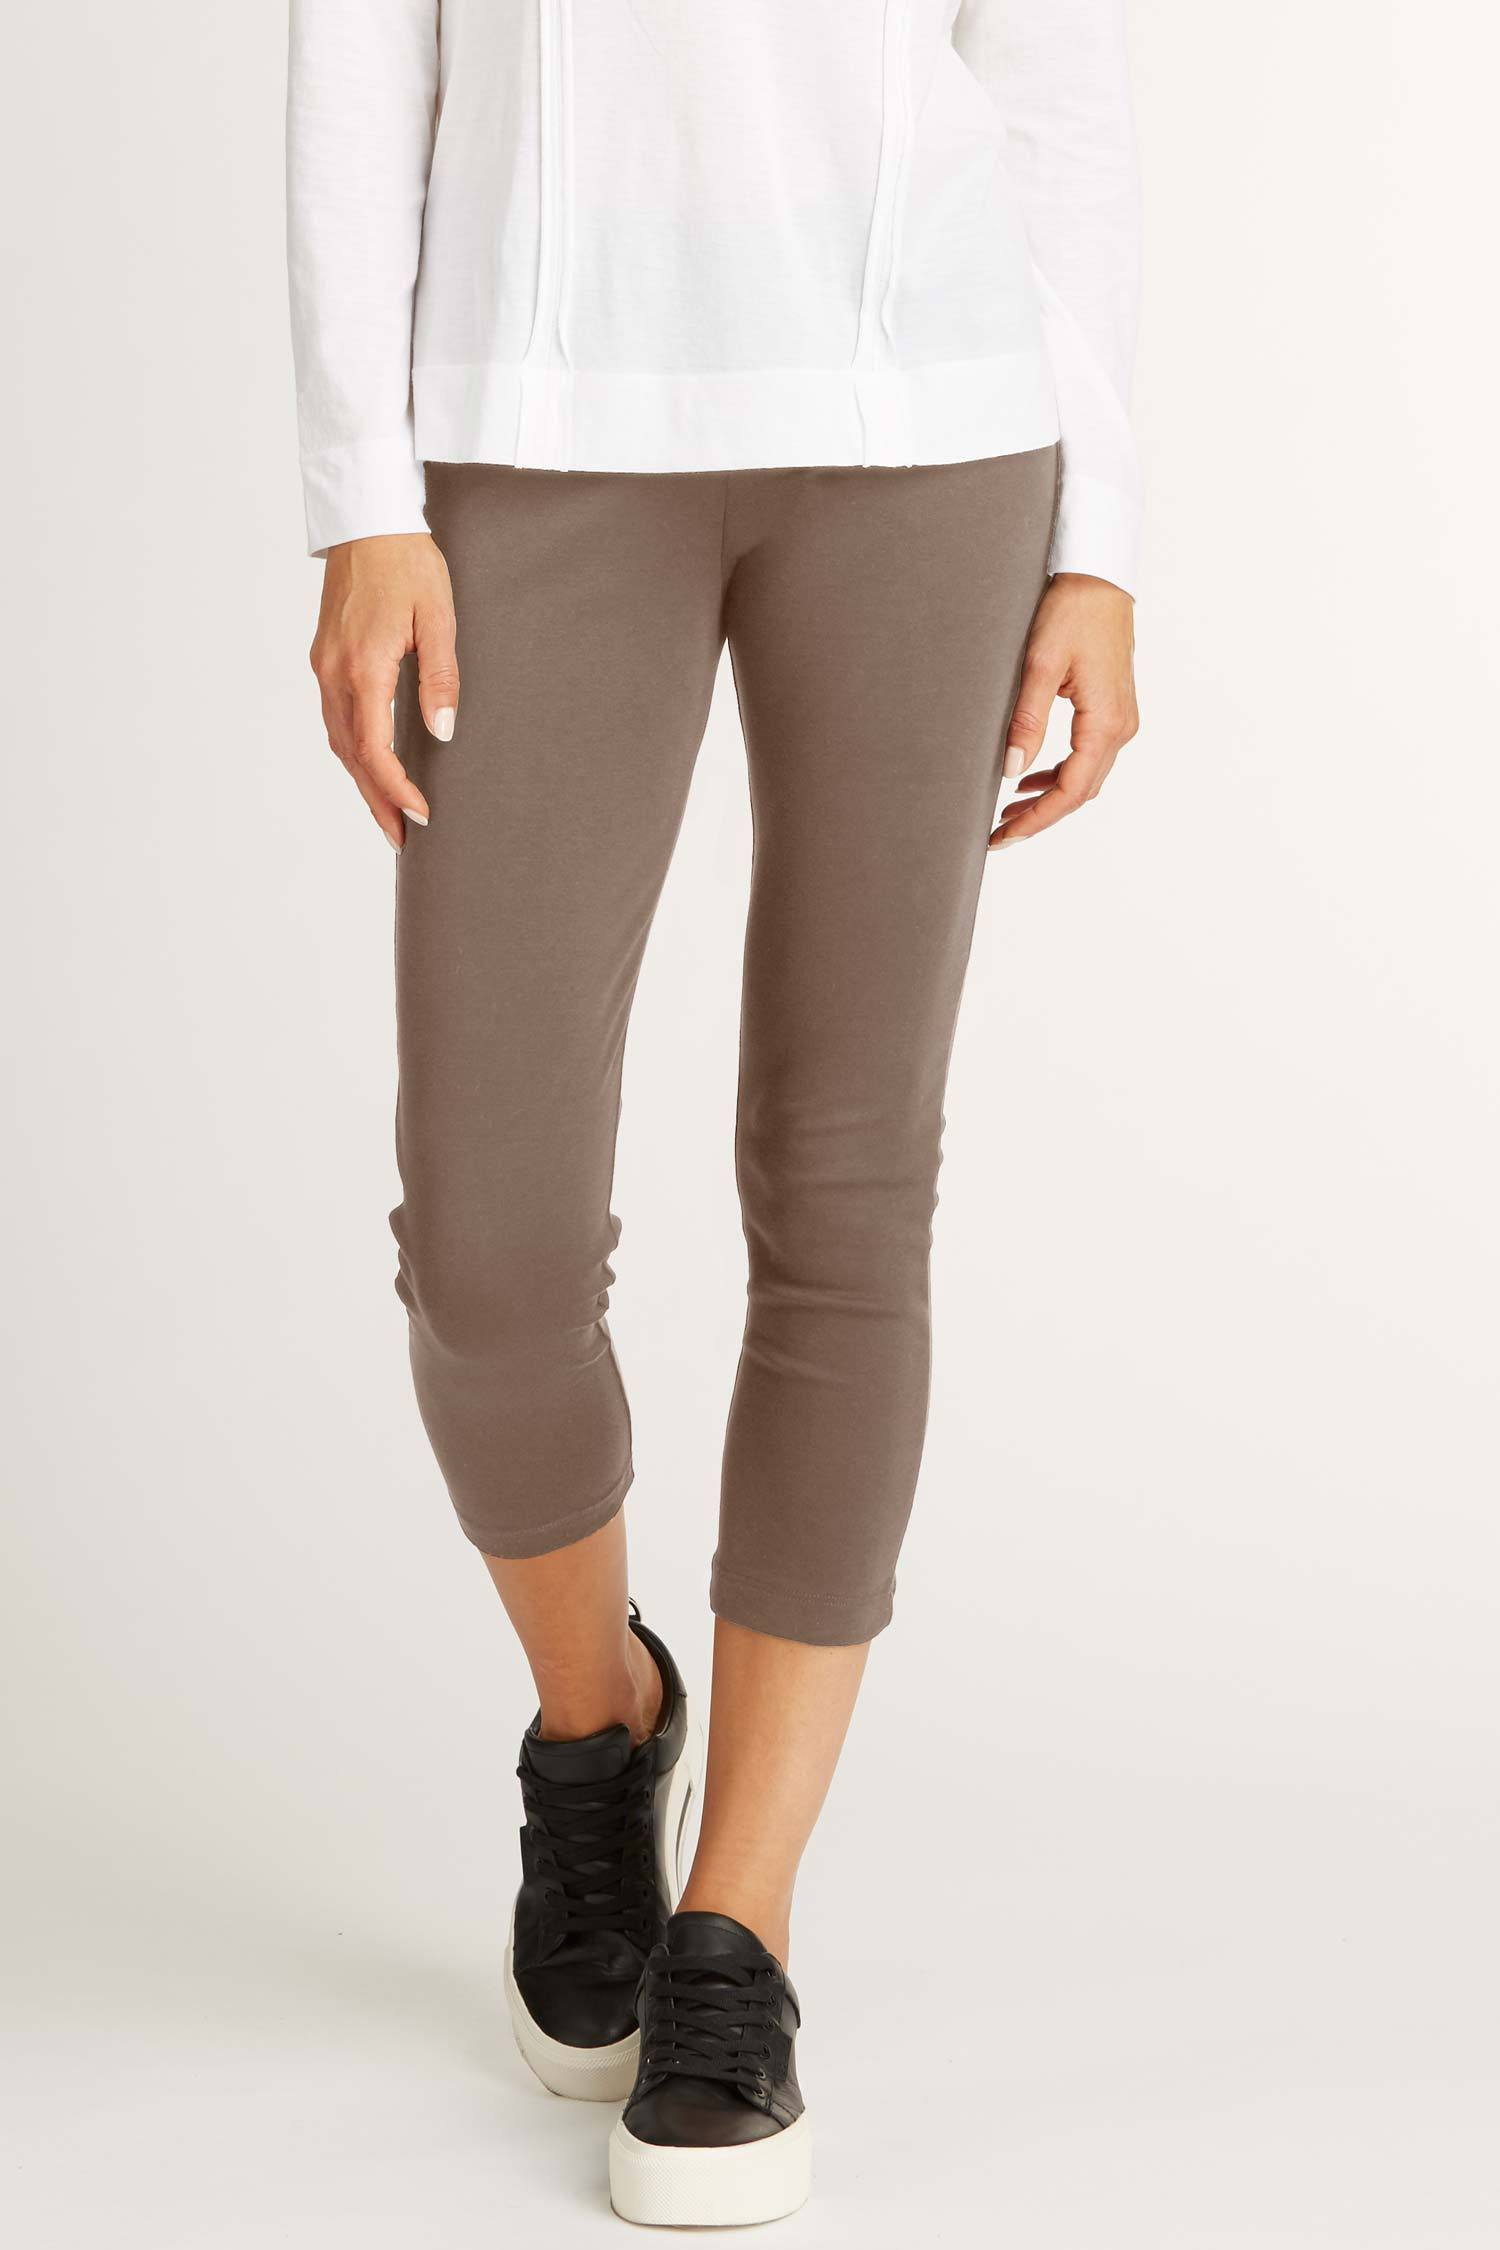 Womens Organic Cotton Leggings | Brown Luxe Capri Legging | Indigenous